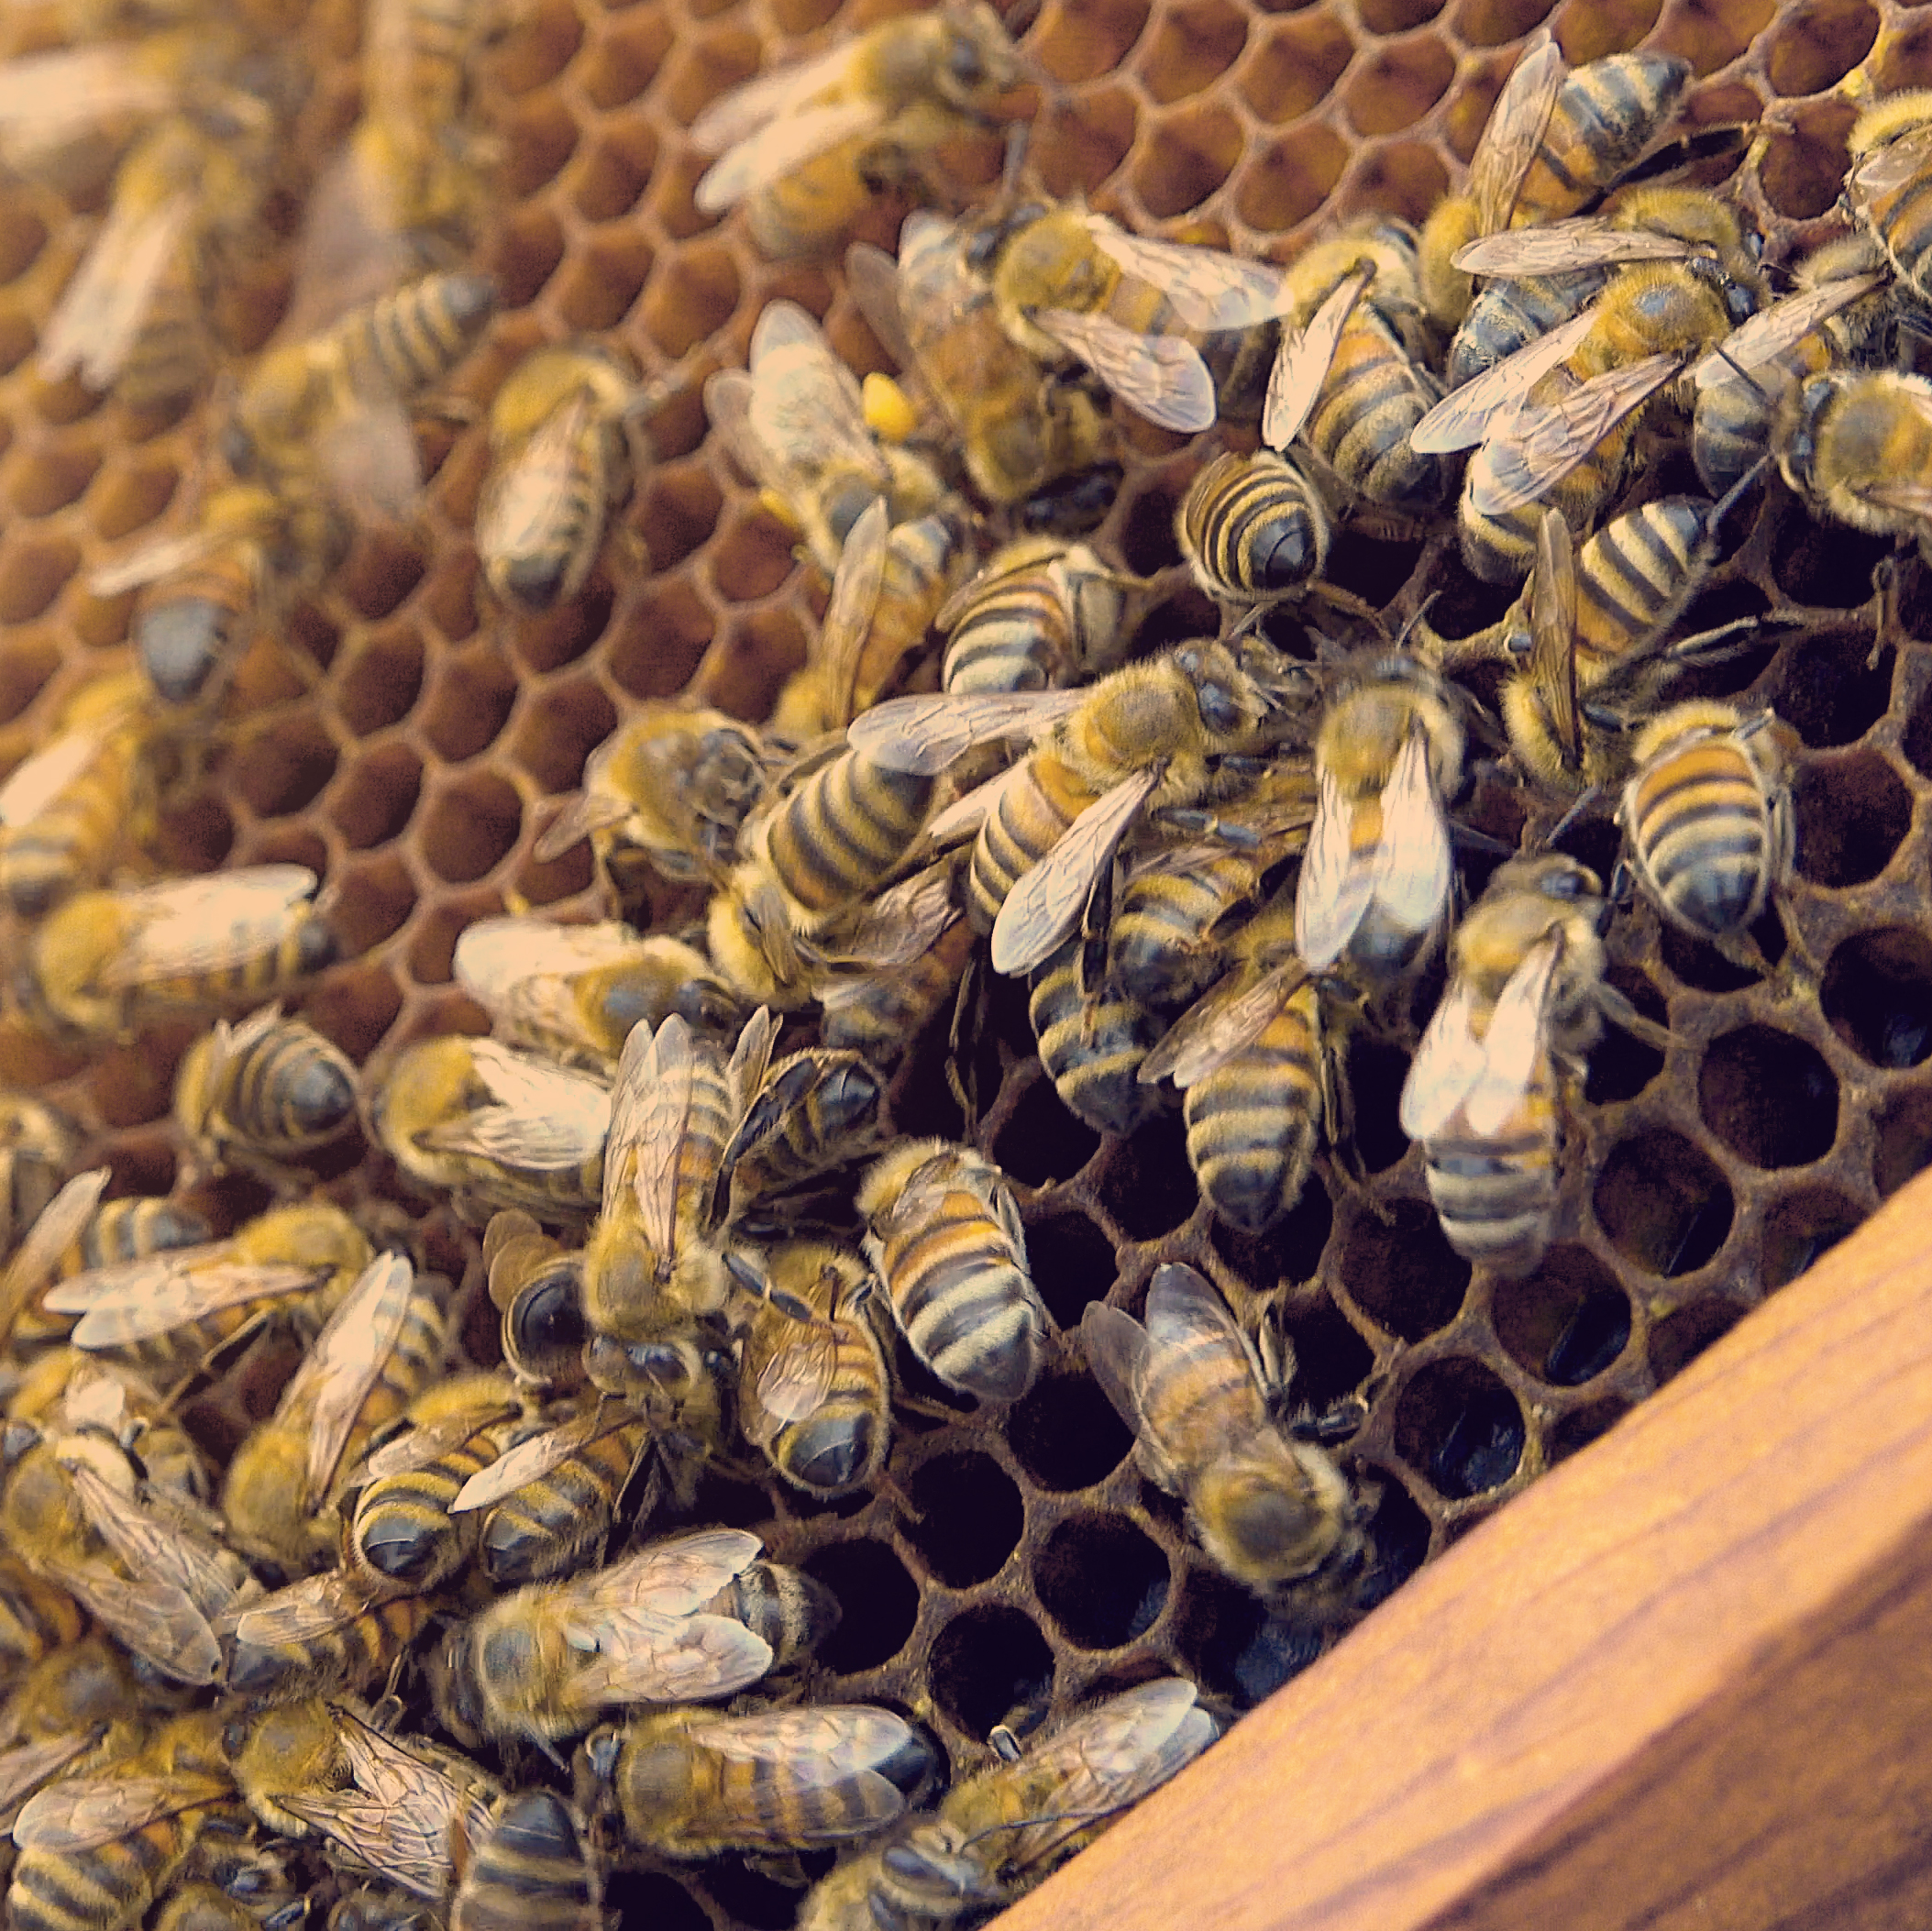 How to move bees into hives